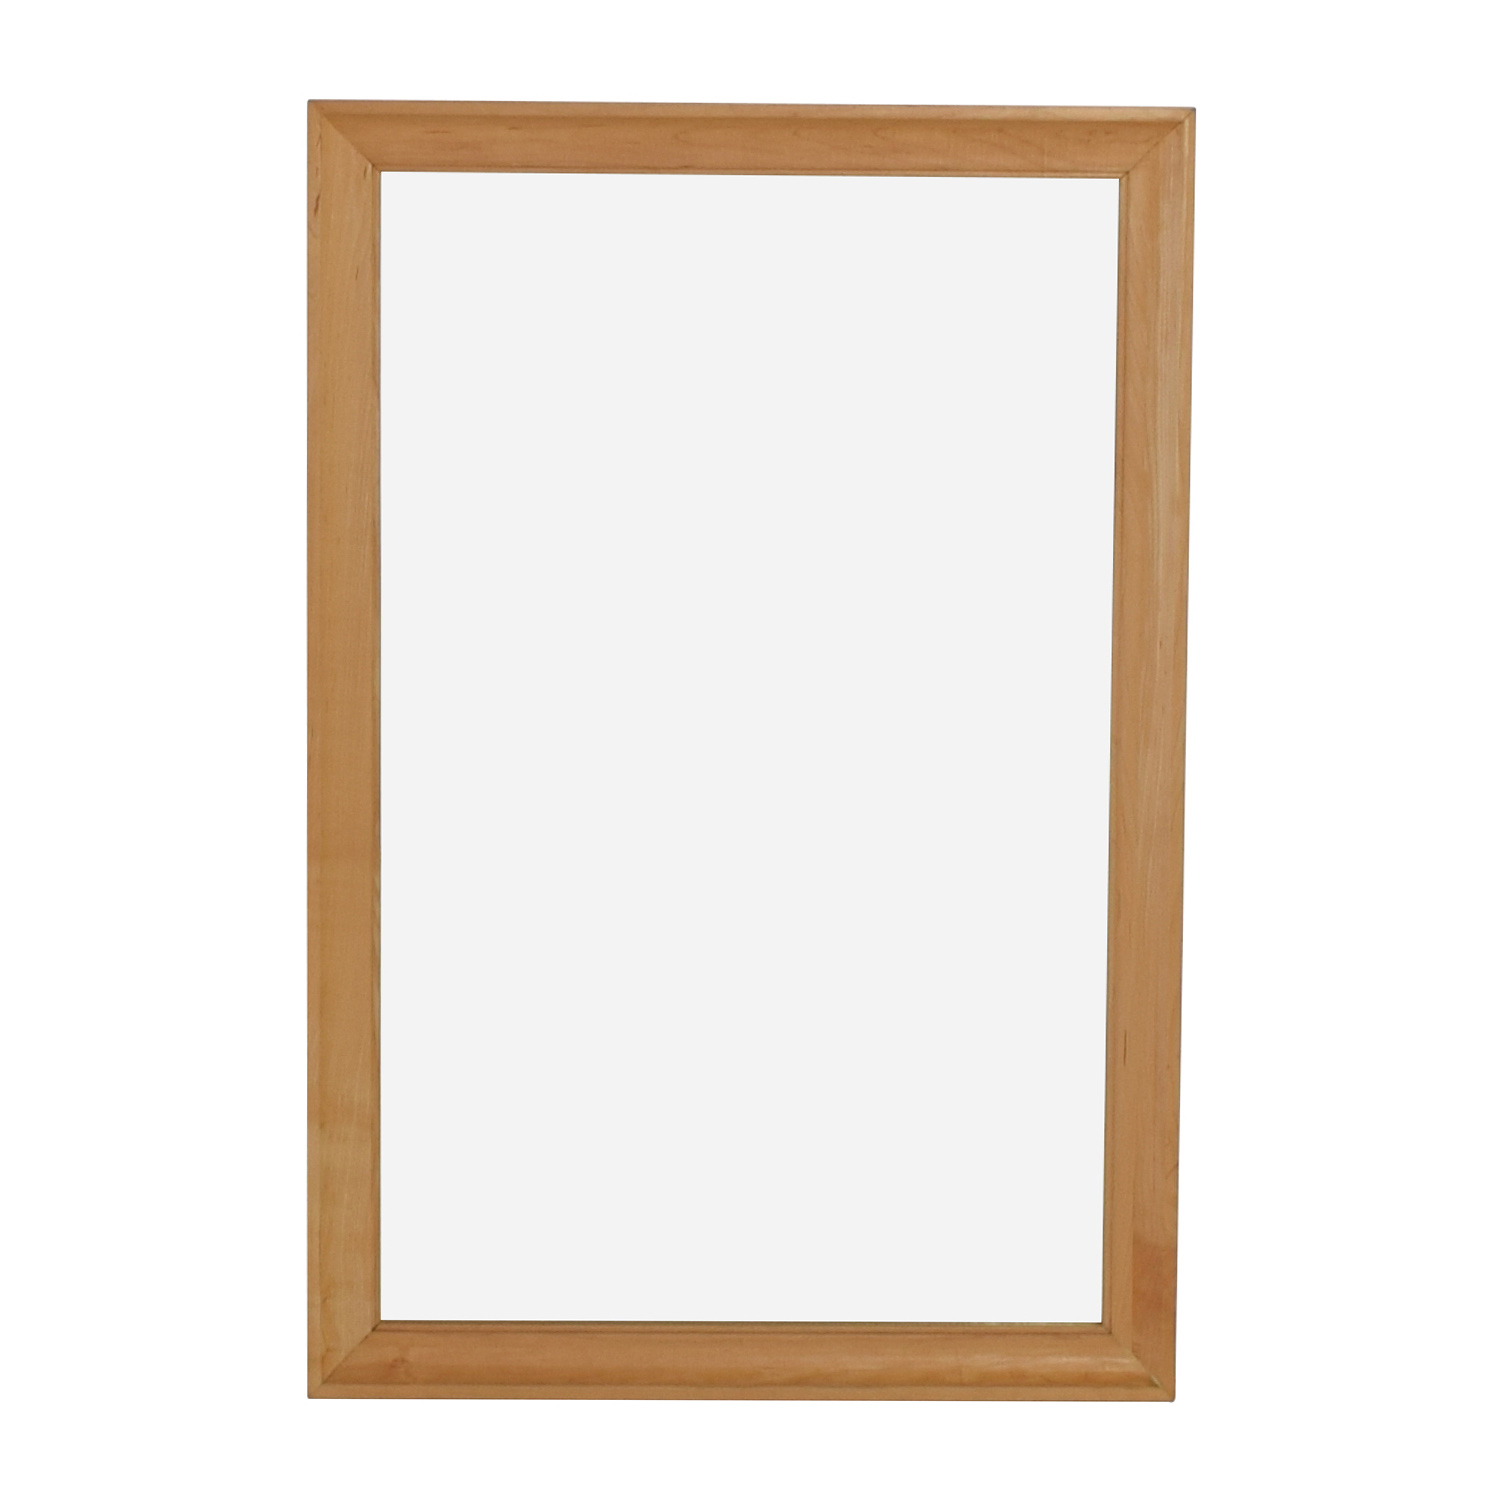 Stanley Furnitire Stanley Furniture Maple Wood Frame Mirror price